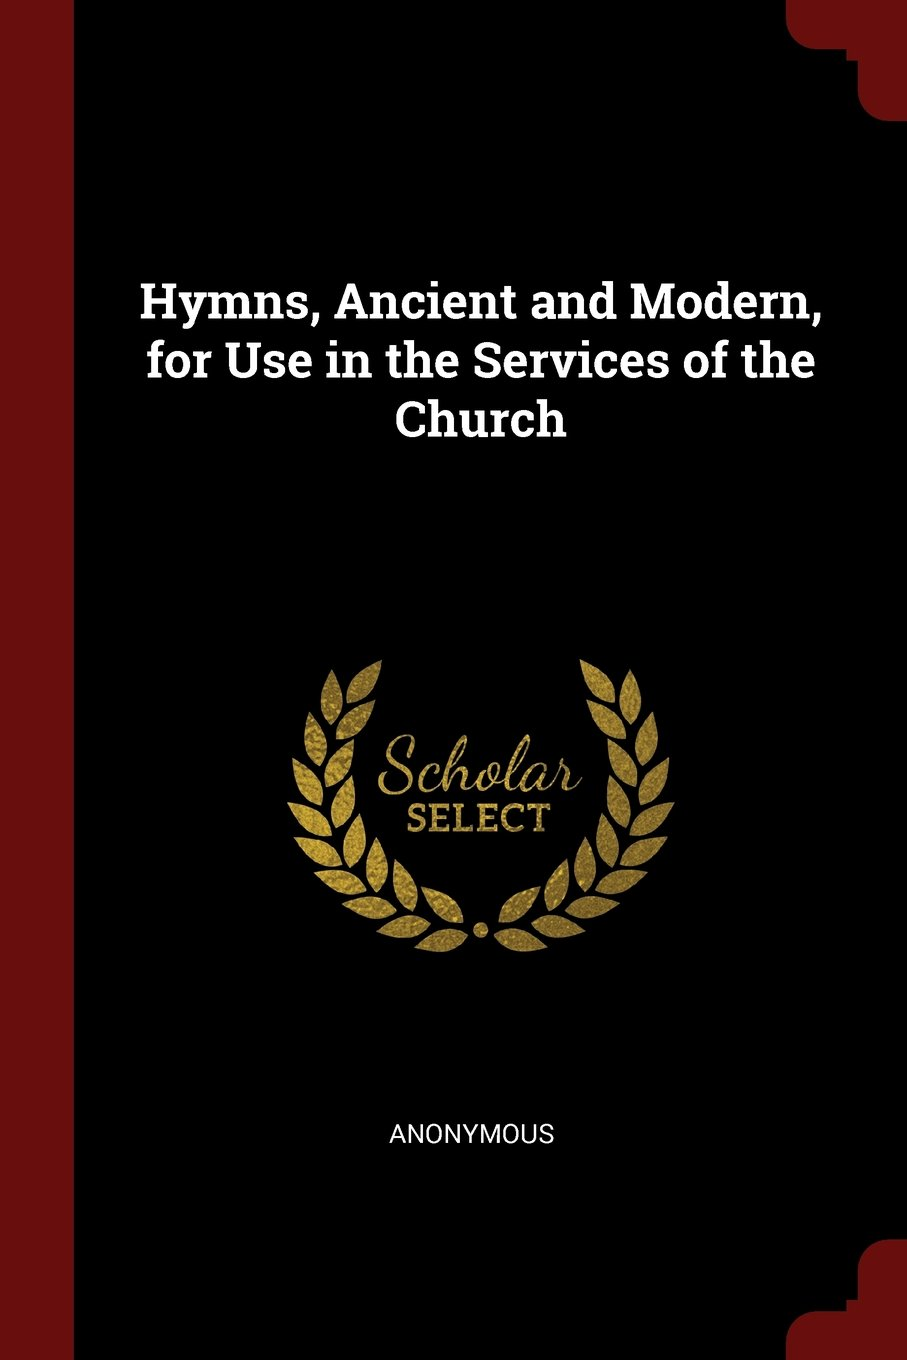 Hymns, Ancient and Modern, for Use in the Services of the Church:  Anonymous: 9781375491440: Amazon.com: Books